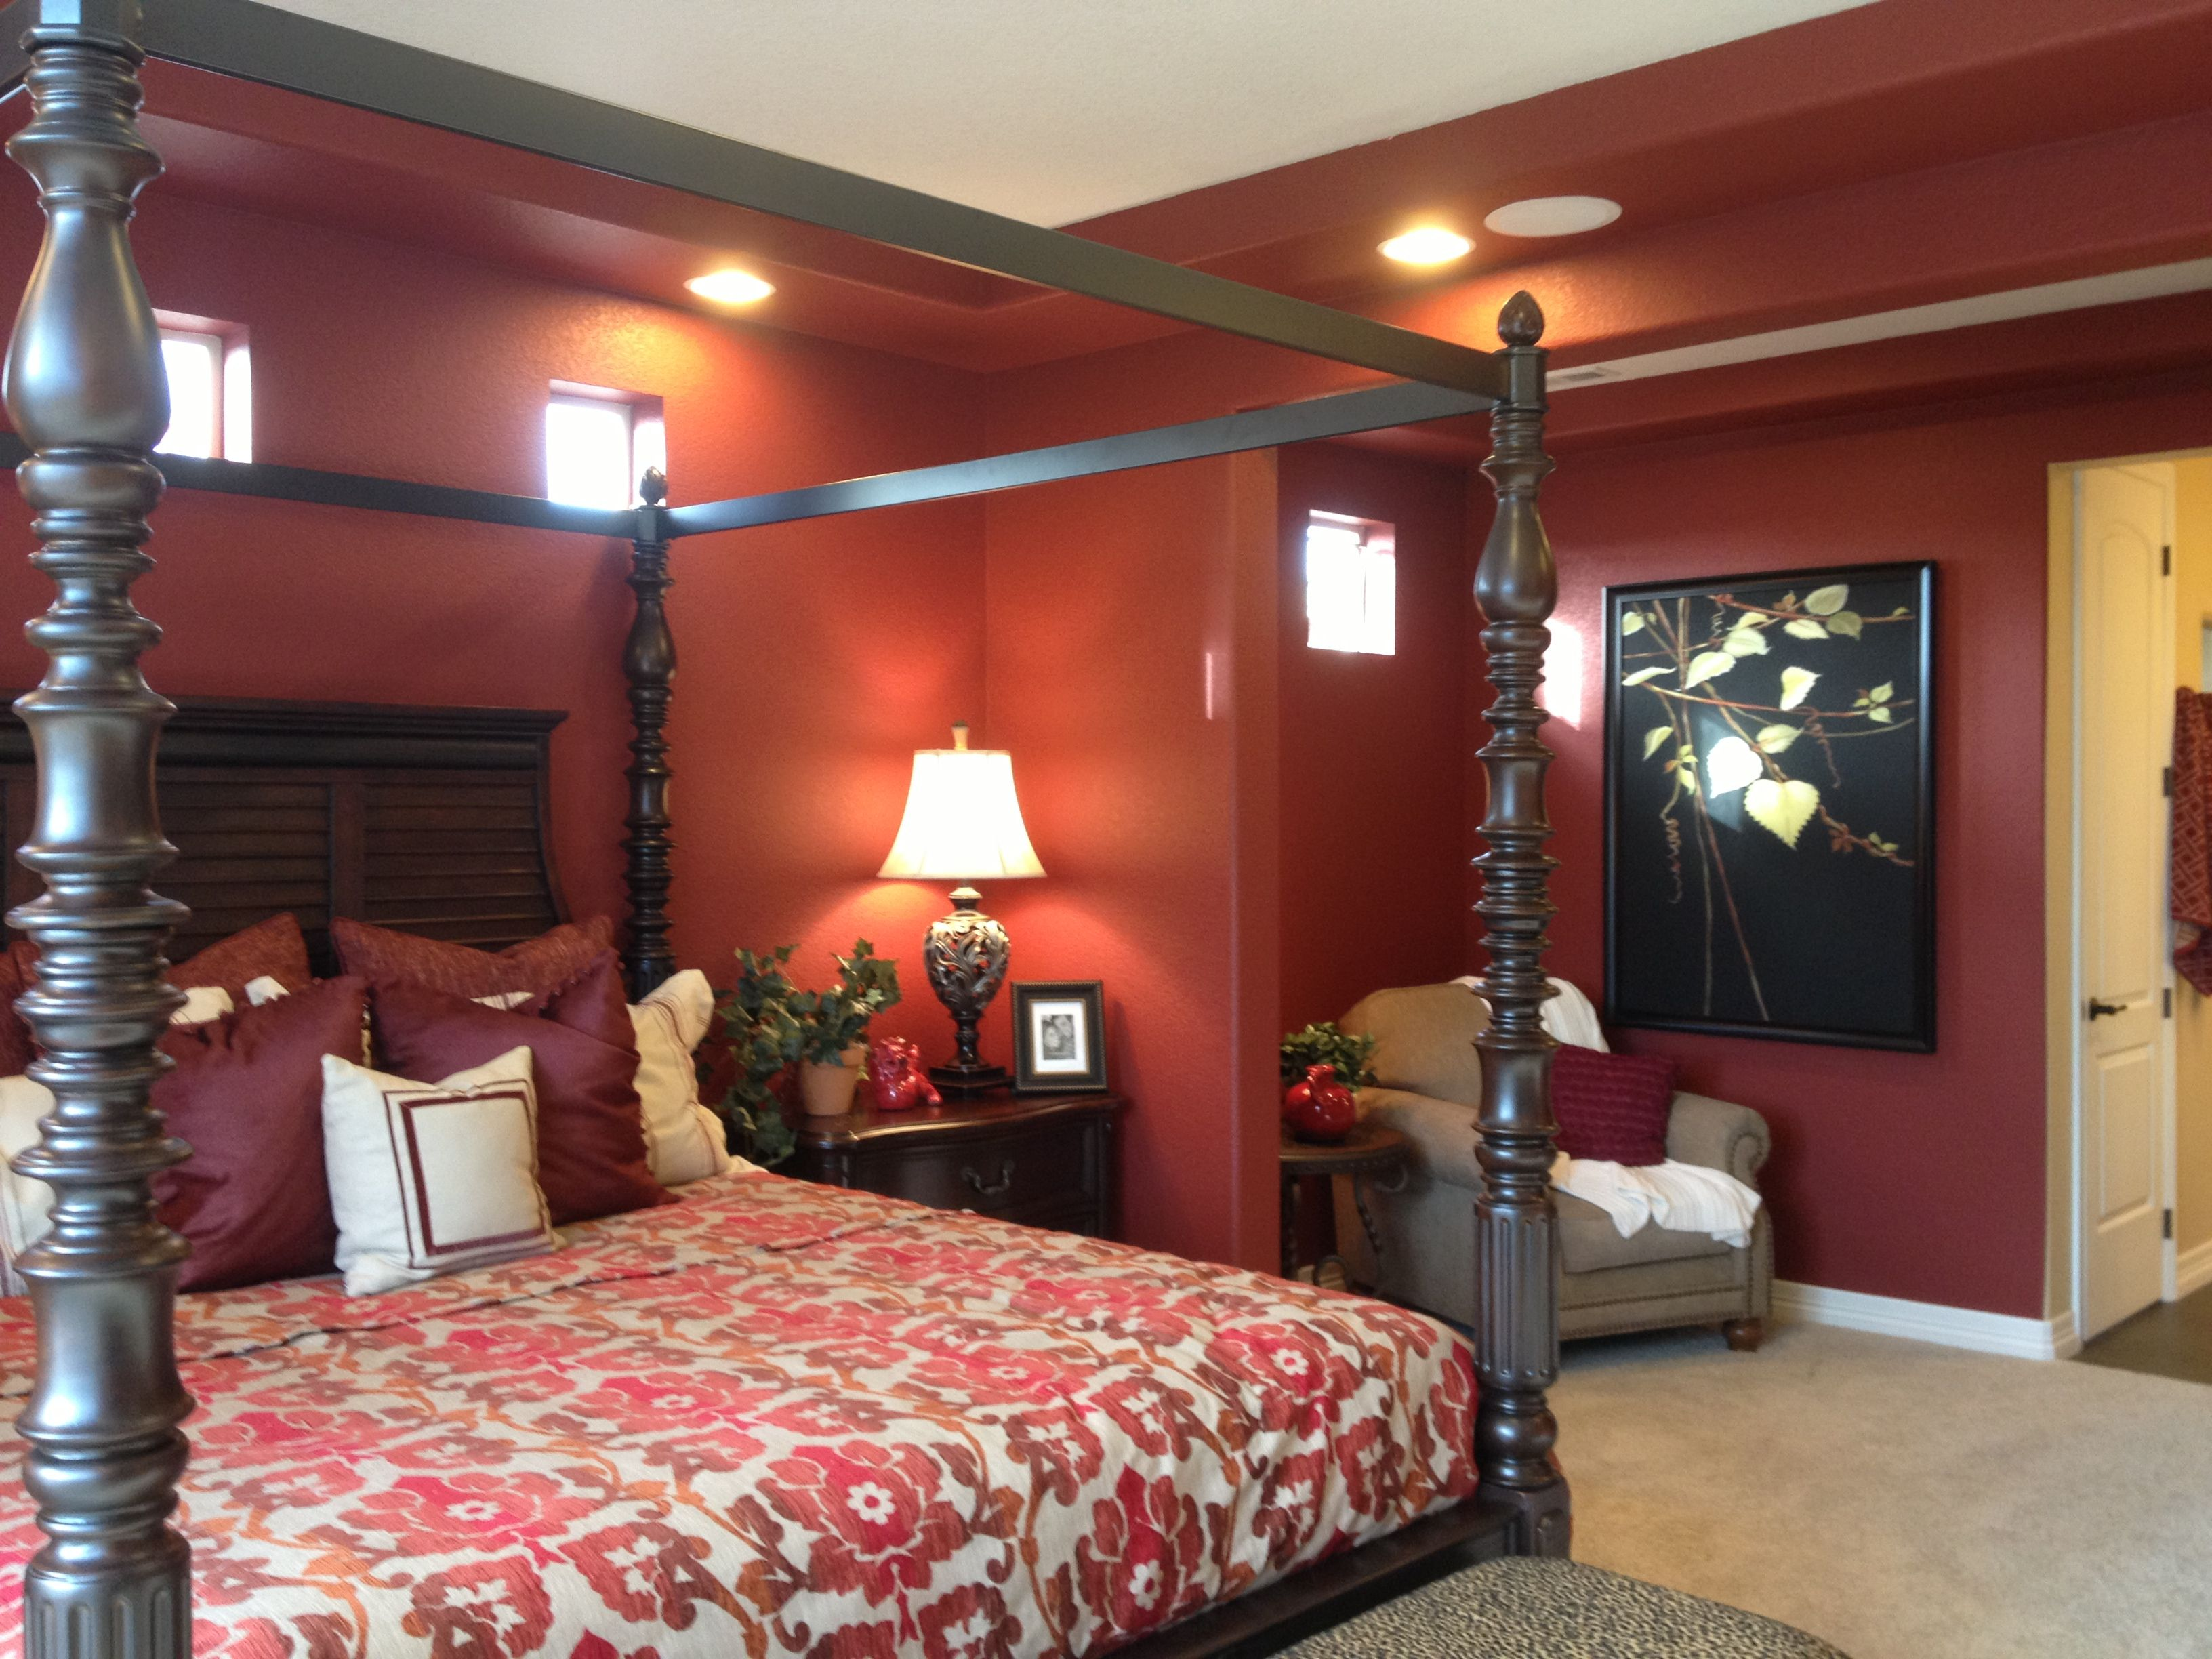 Painting My Room Red Behr Sh170 Brick Red Bedroom Design Trends